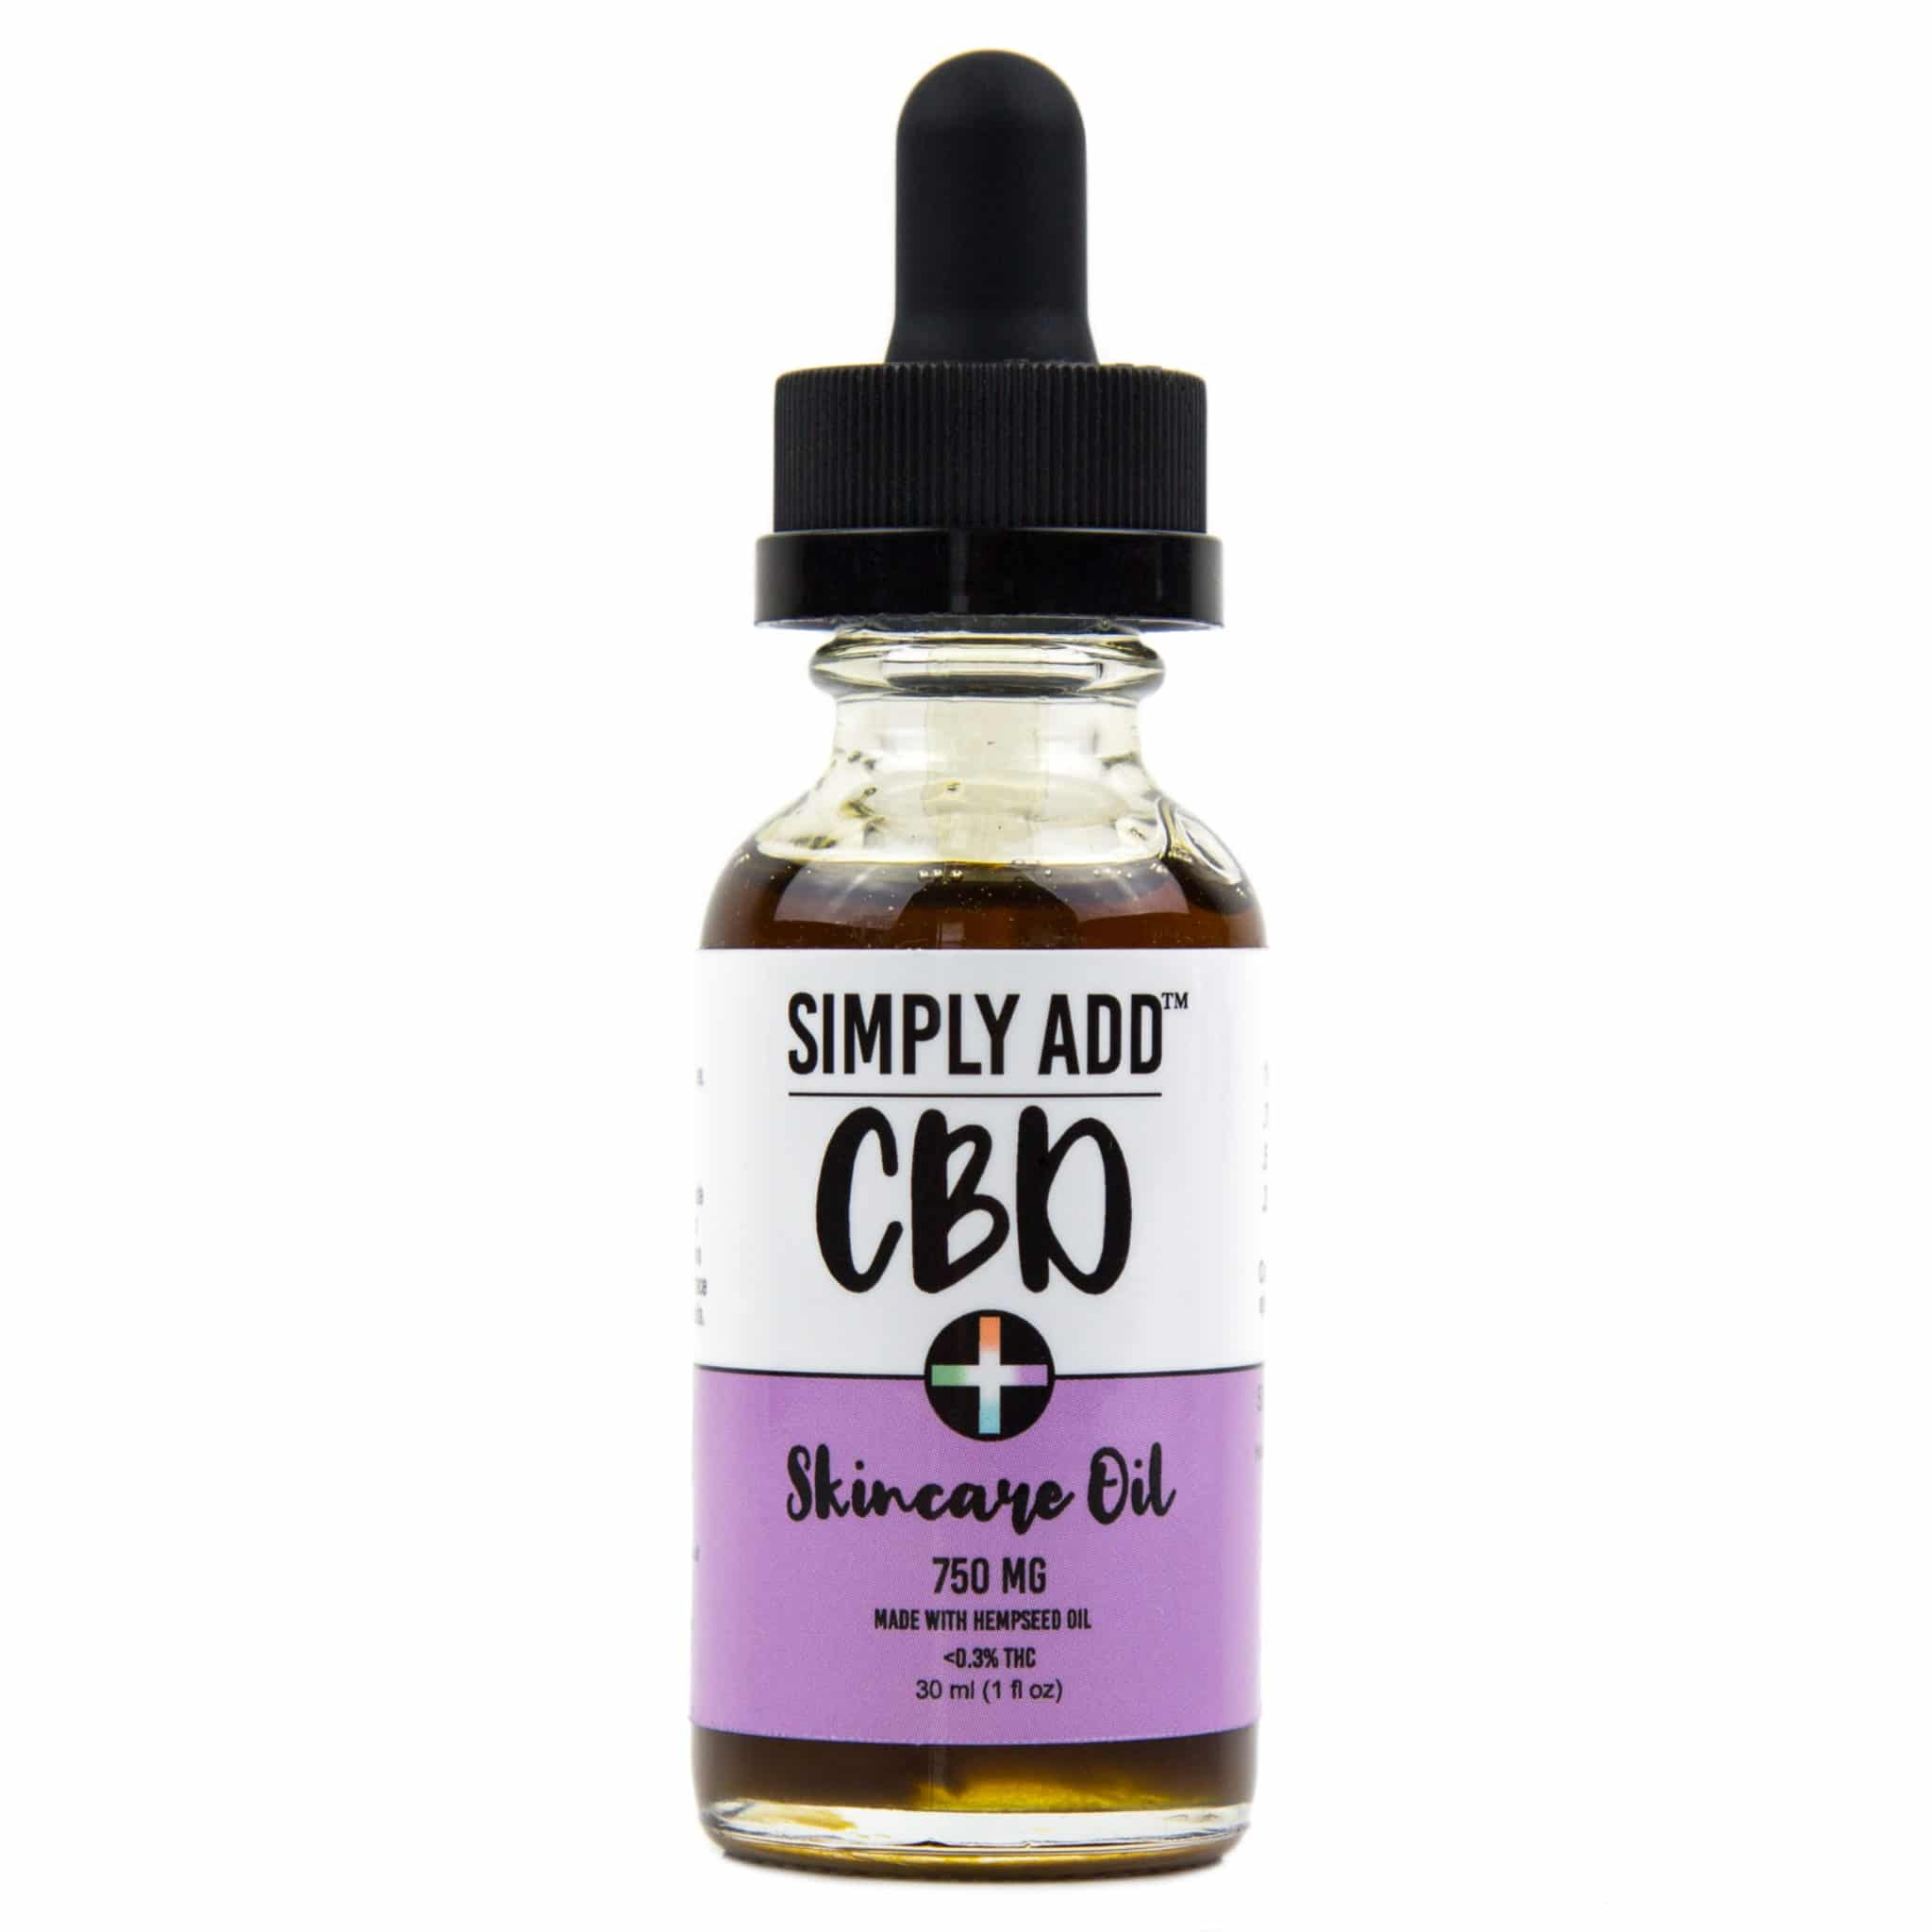 Simply Add CBD skincare oil for crafting cosmetics